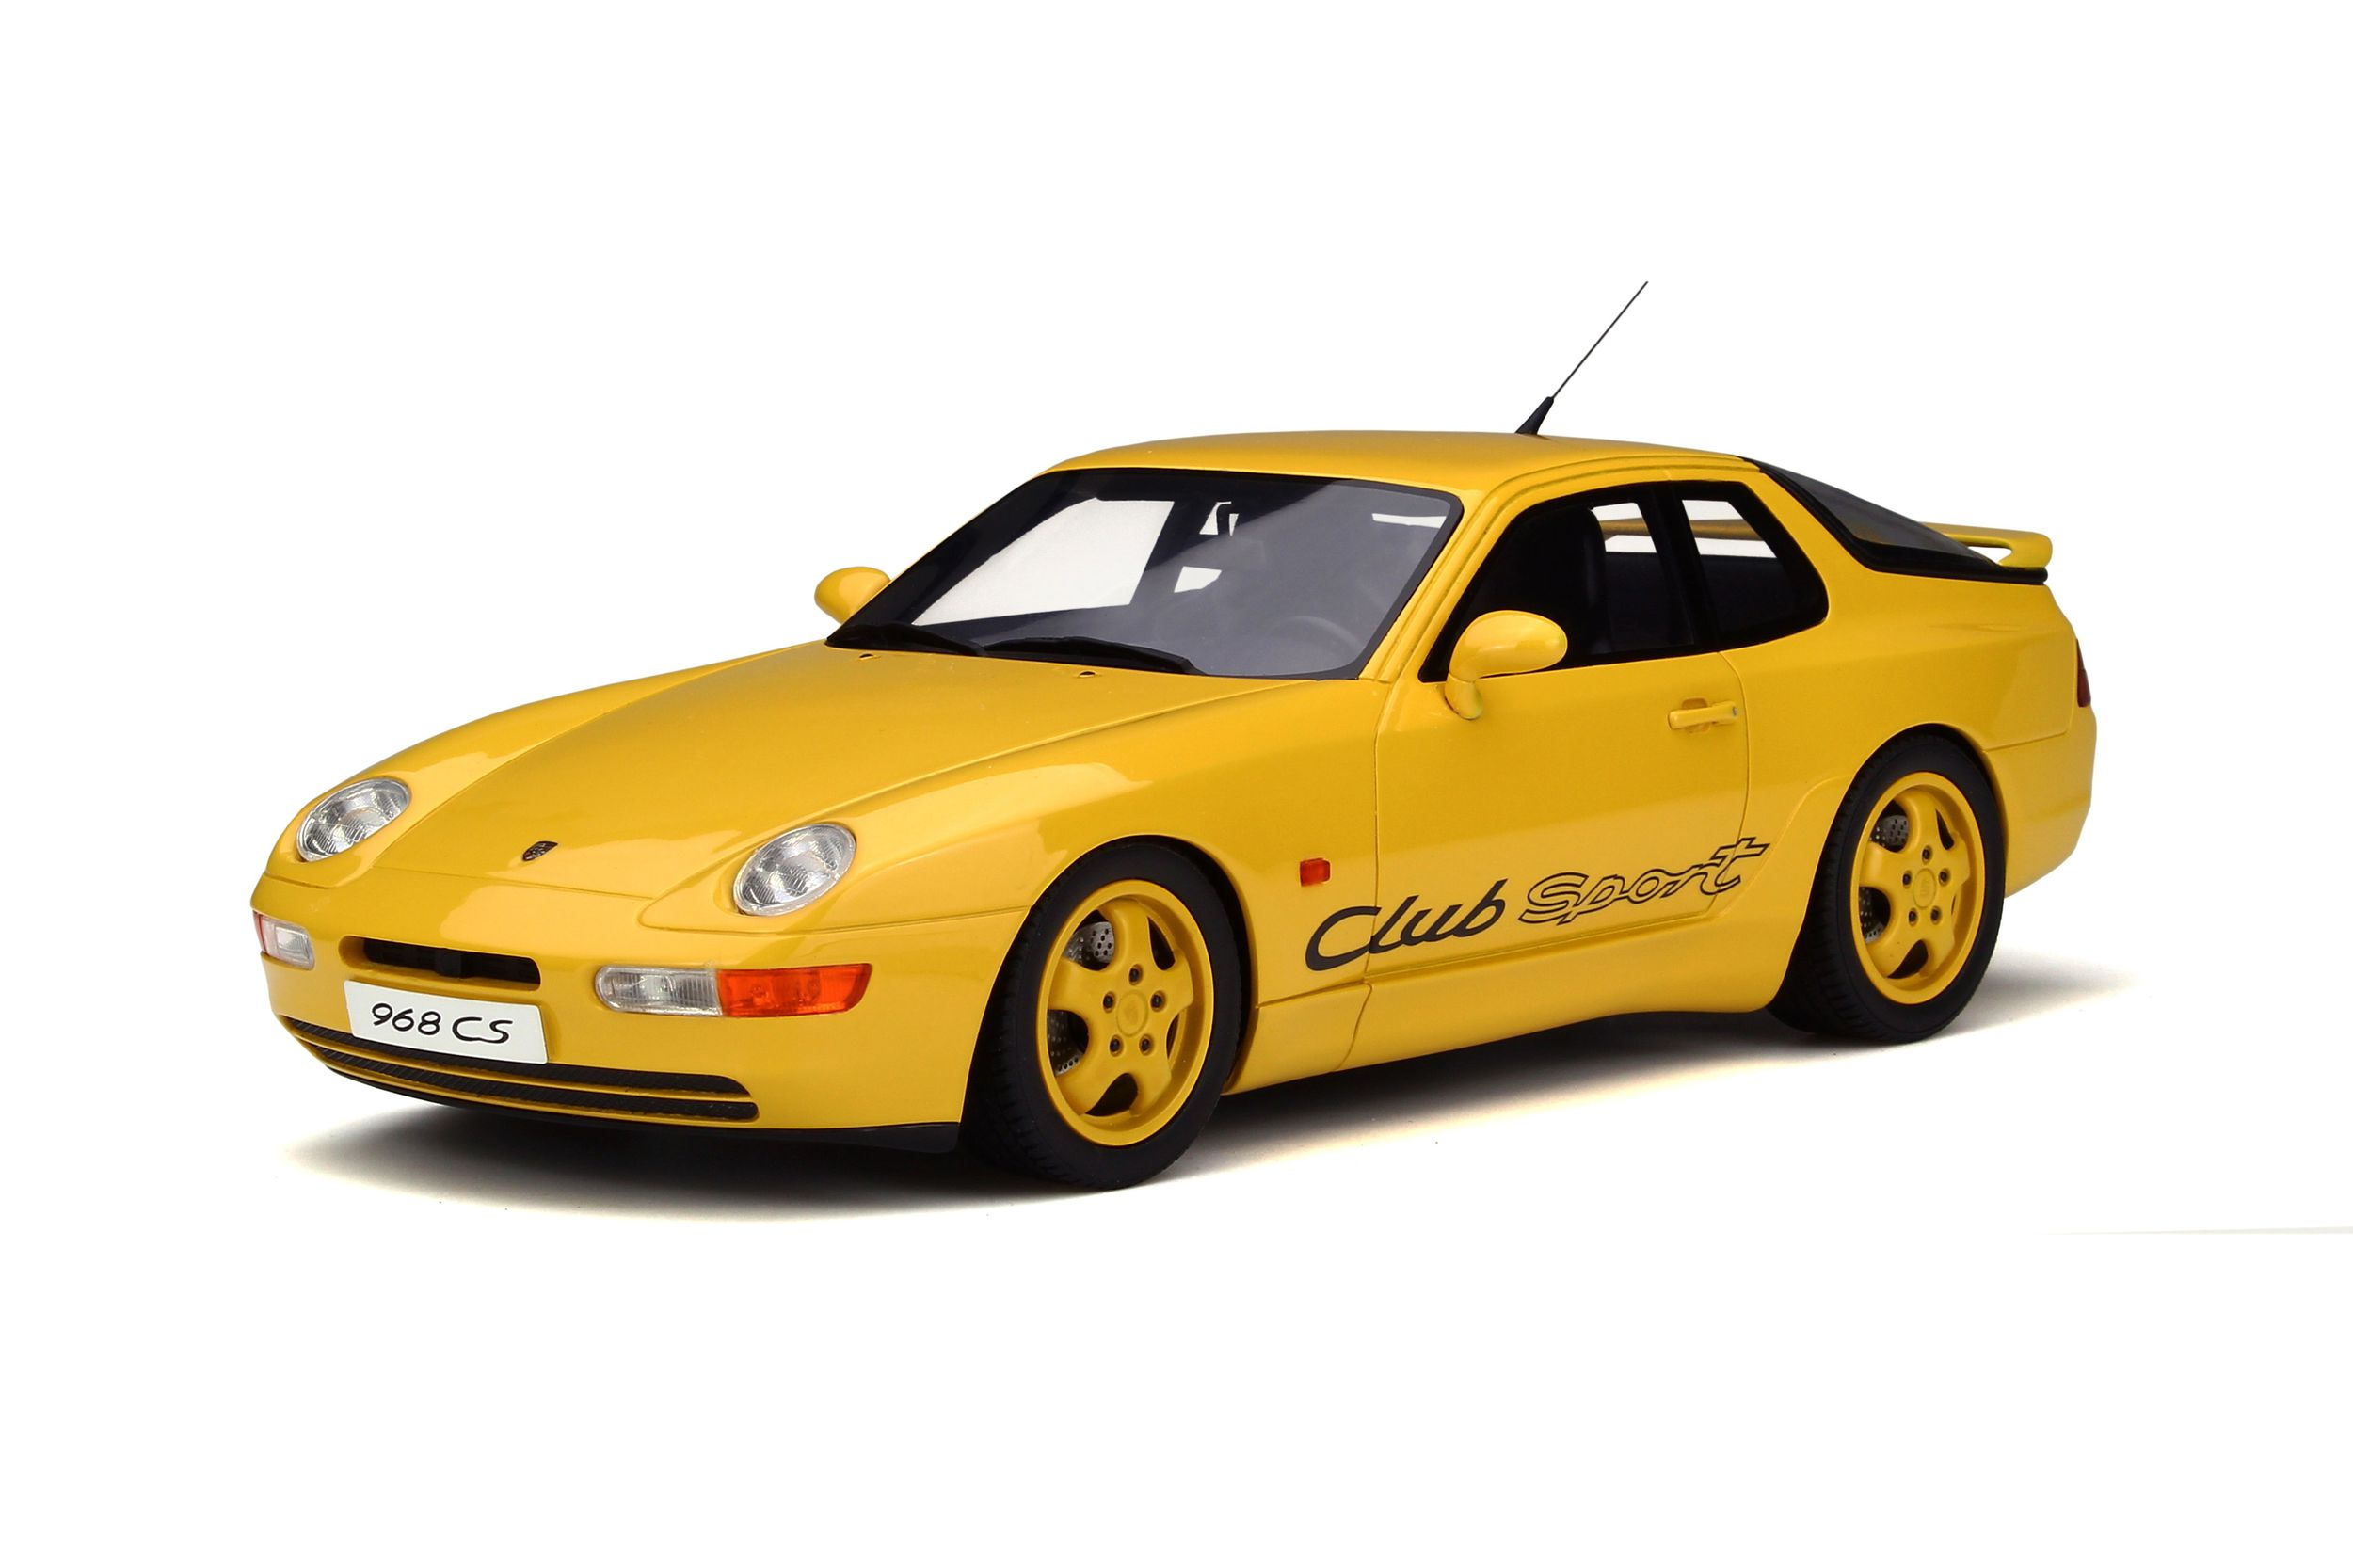 Porsche 968 Club Sport Model Car Collection Gt Spirit